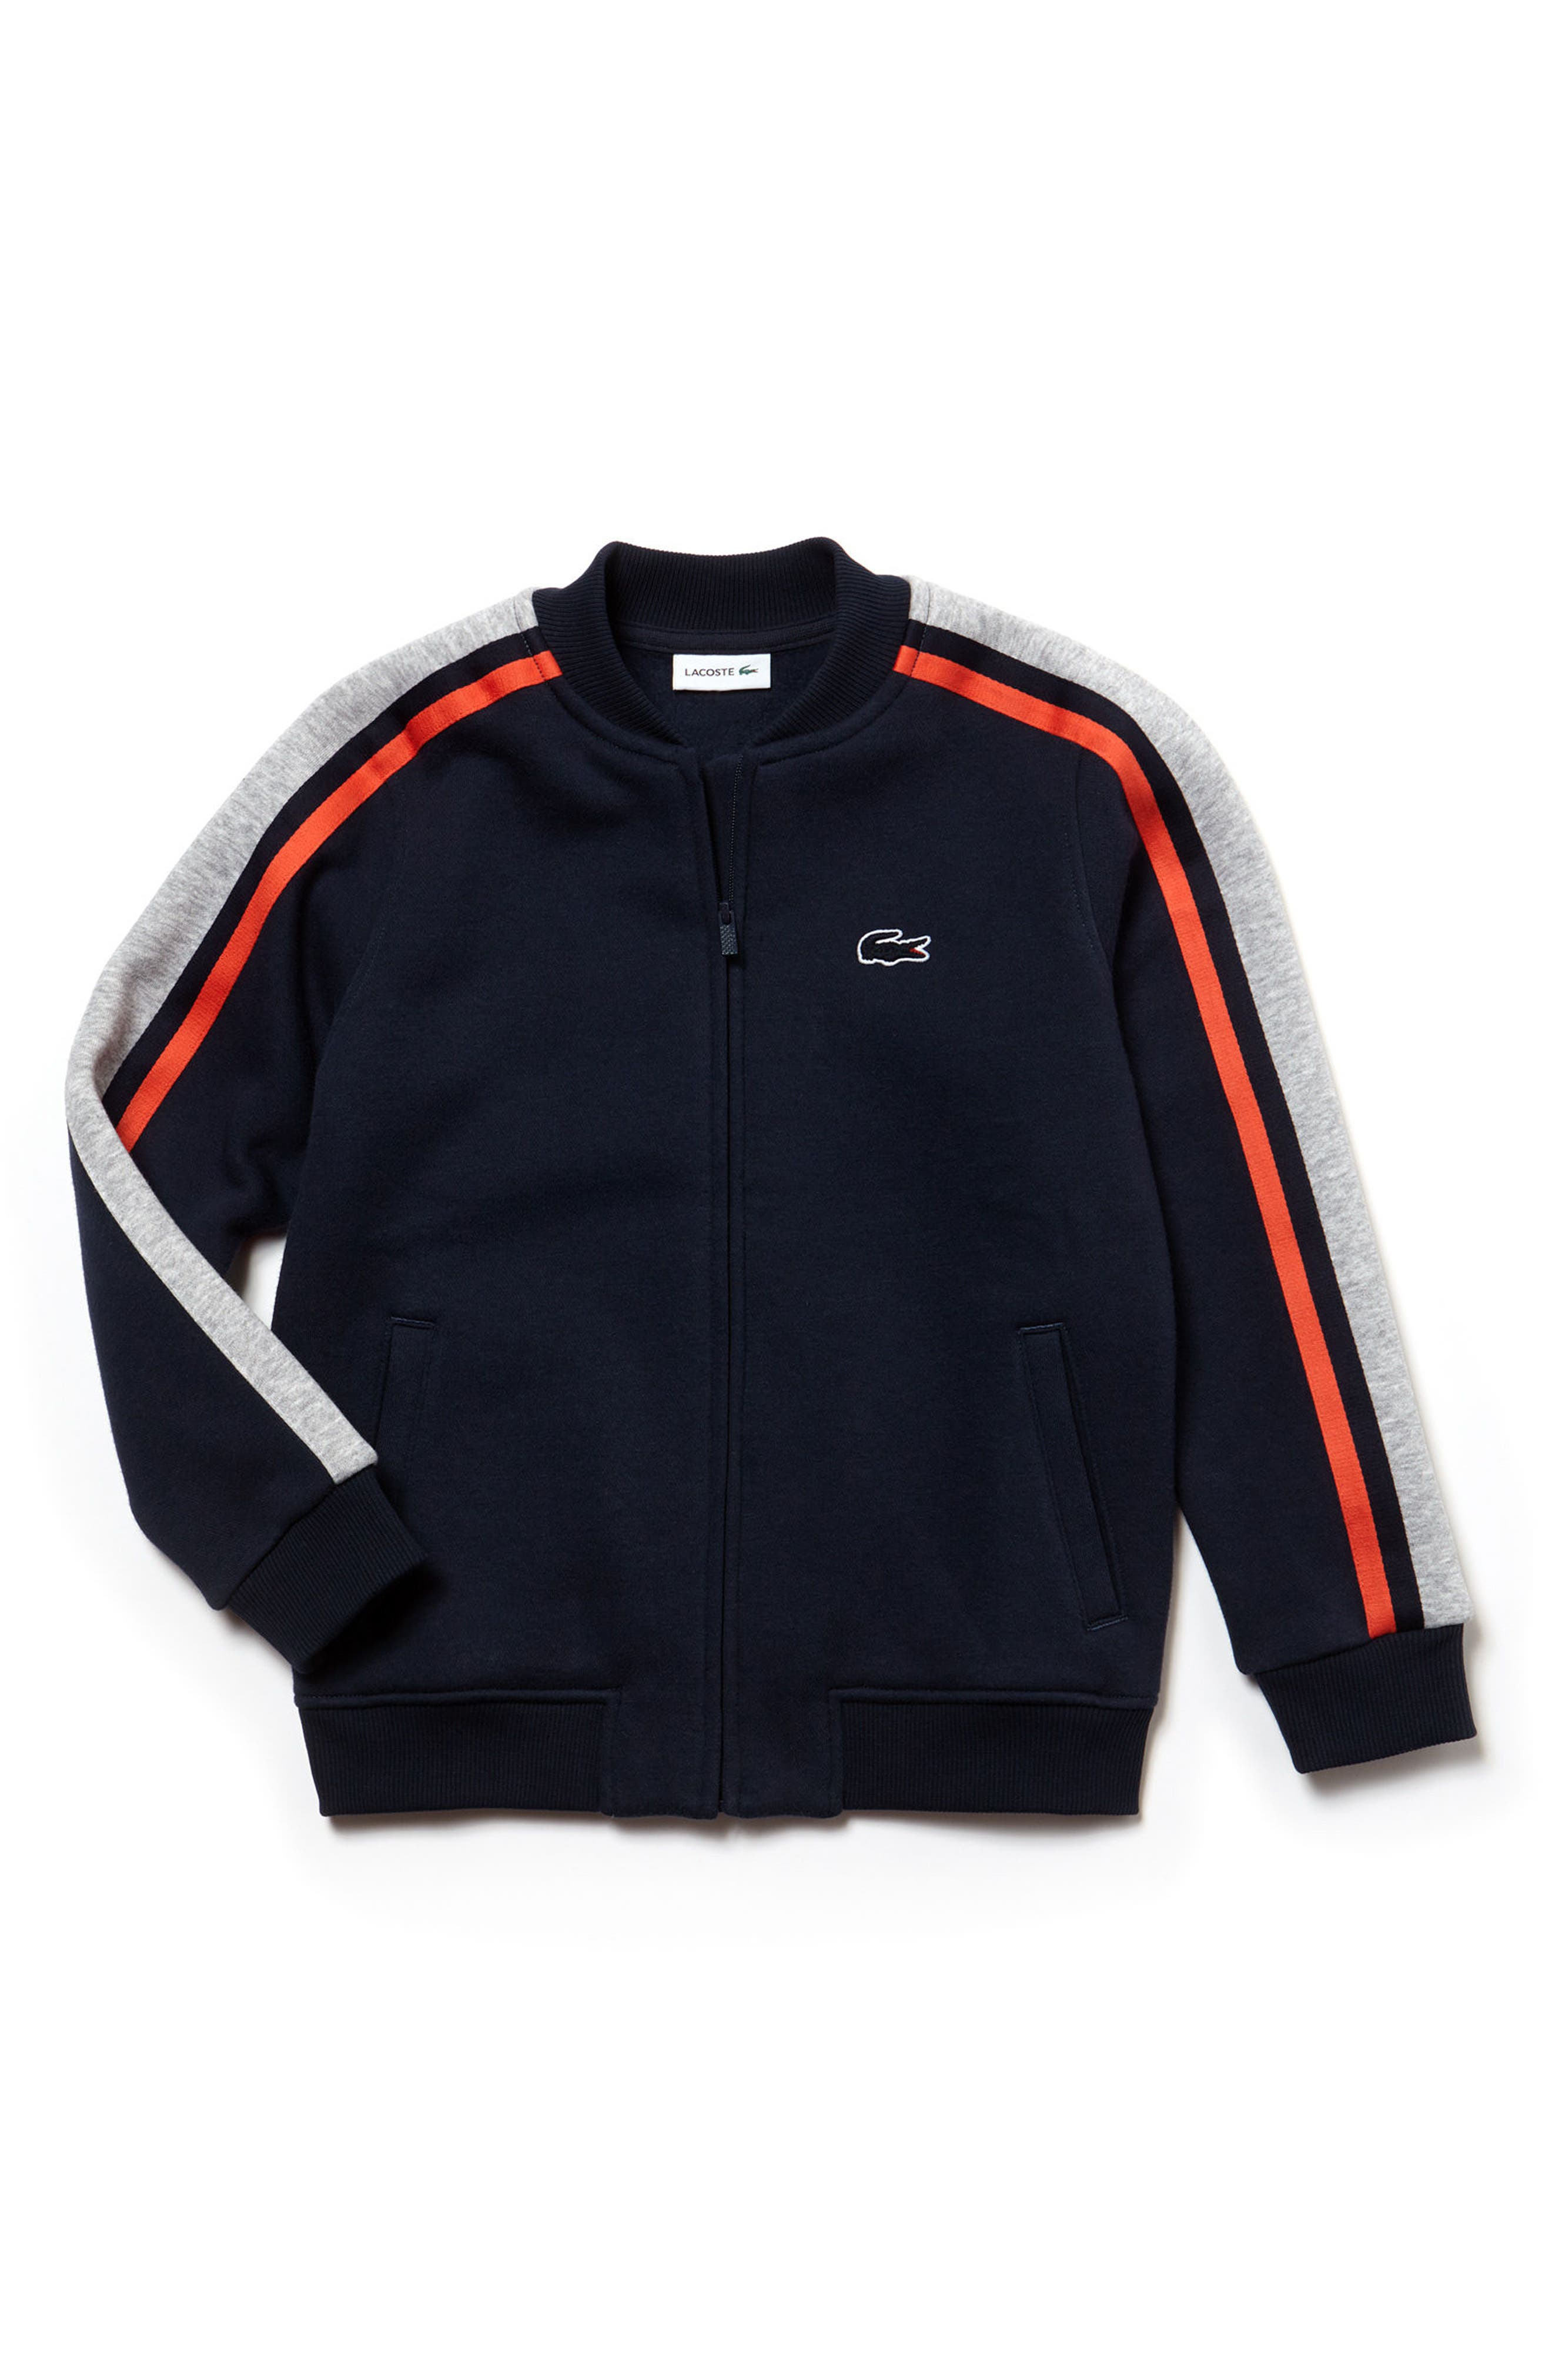 Stripe Zip Sweatshirt,                         Main,                         color, Navy Blue/ Silver Chine